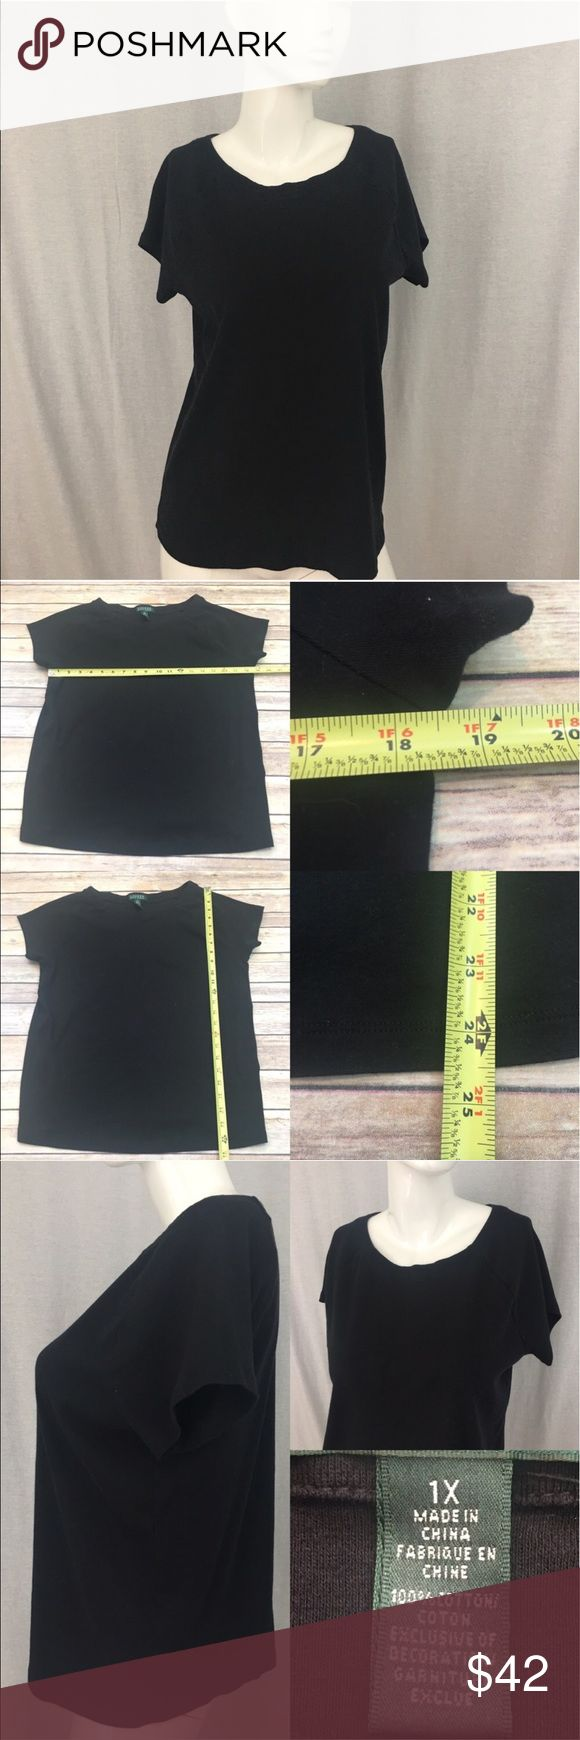 🌷Size 1X Ralph Lauren Black Short Sleeve Top Measurements are in photos. Normal wash wear, no flaws. C2/27  I do not comment to my buyers after purchases, due to their privacy. If you would like any reassurance after your purchase that I did receive your order, please feel free to comment on the listing and I will promptly respond.   I ship everyday and I always package safely. Thank you for shopping my closet! Lauren Ralph Lauren Tops Tees - Short Sleeve